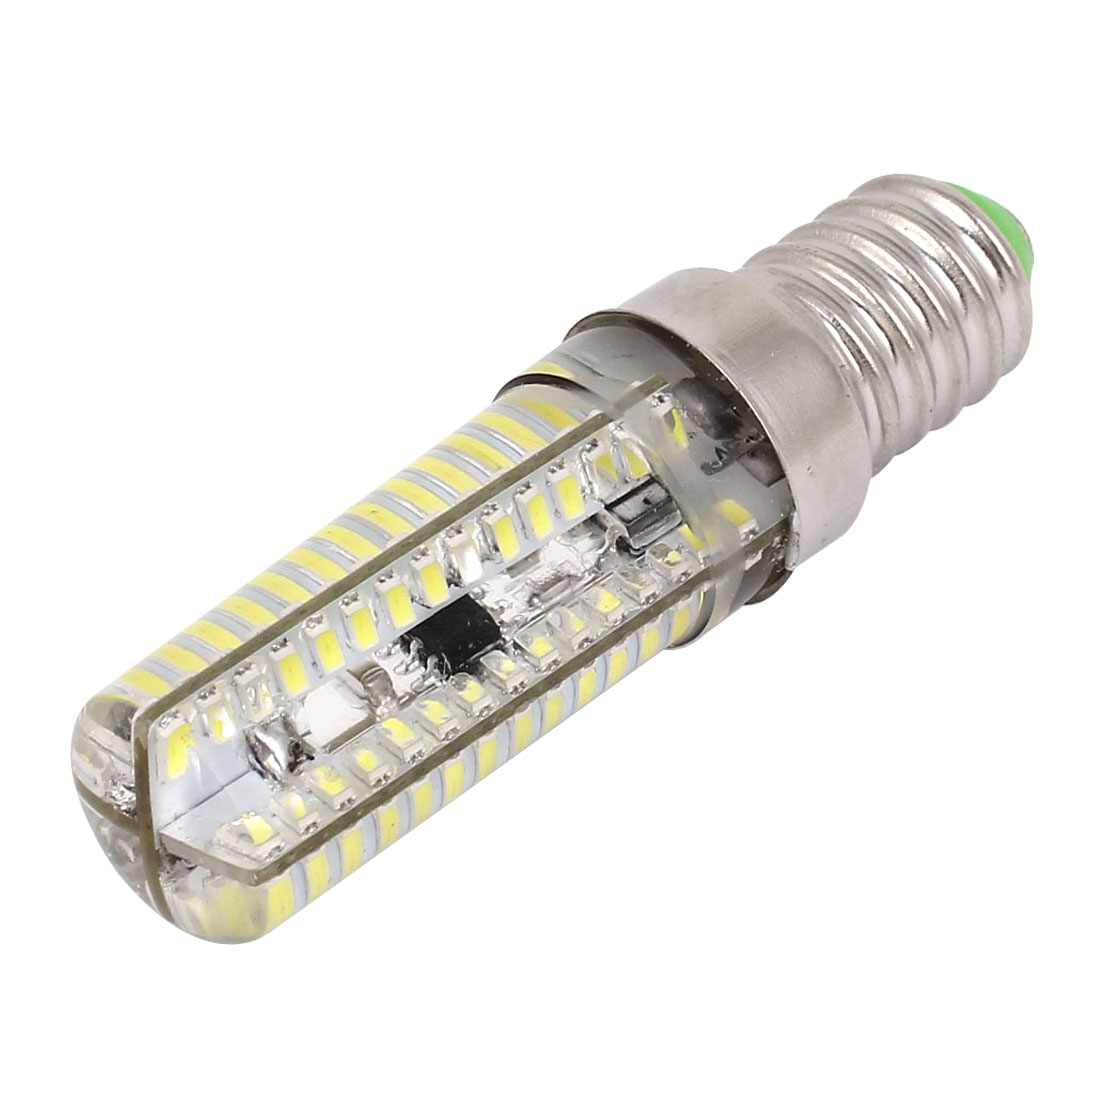 Dimmable E14 8W 120 LED Lamp 3014 SMD Light Pure White AC 220V-240V